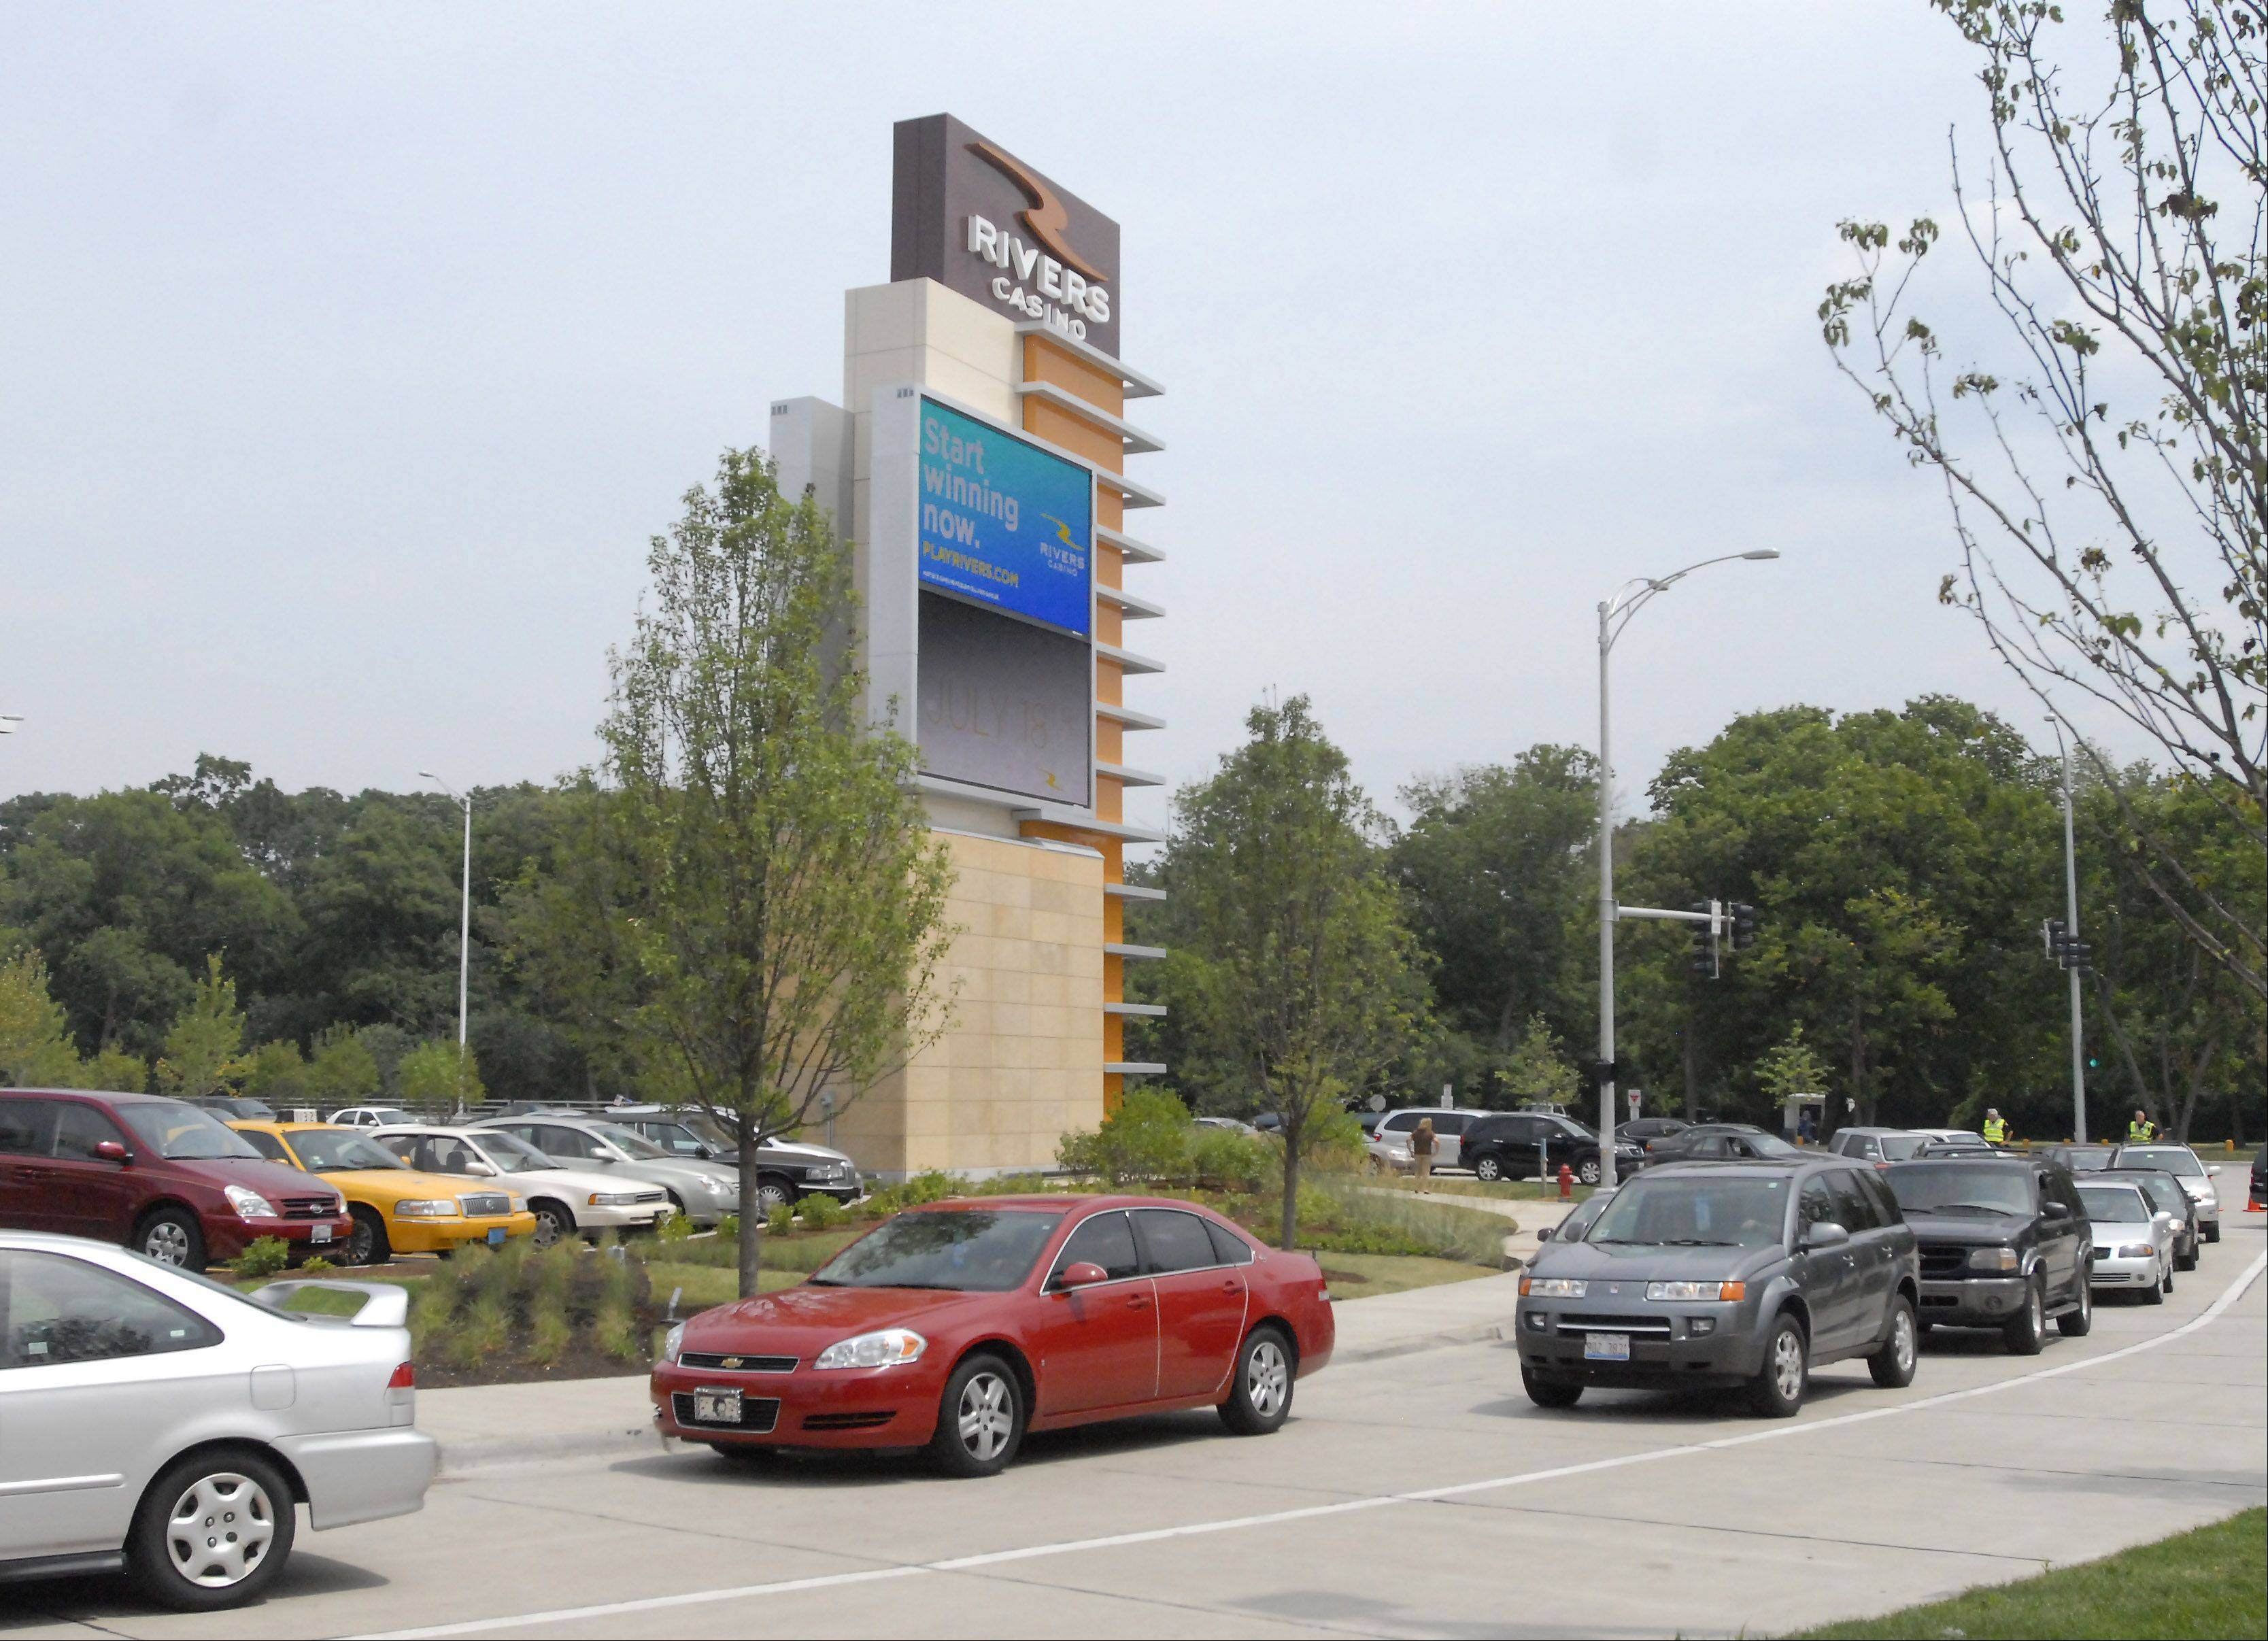 Bill Zars/bzars@dailyherald.com There�s a move to organize the parking and valet attendants at Rivers Casino in Des Plaines with support from the city�s mayor.